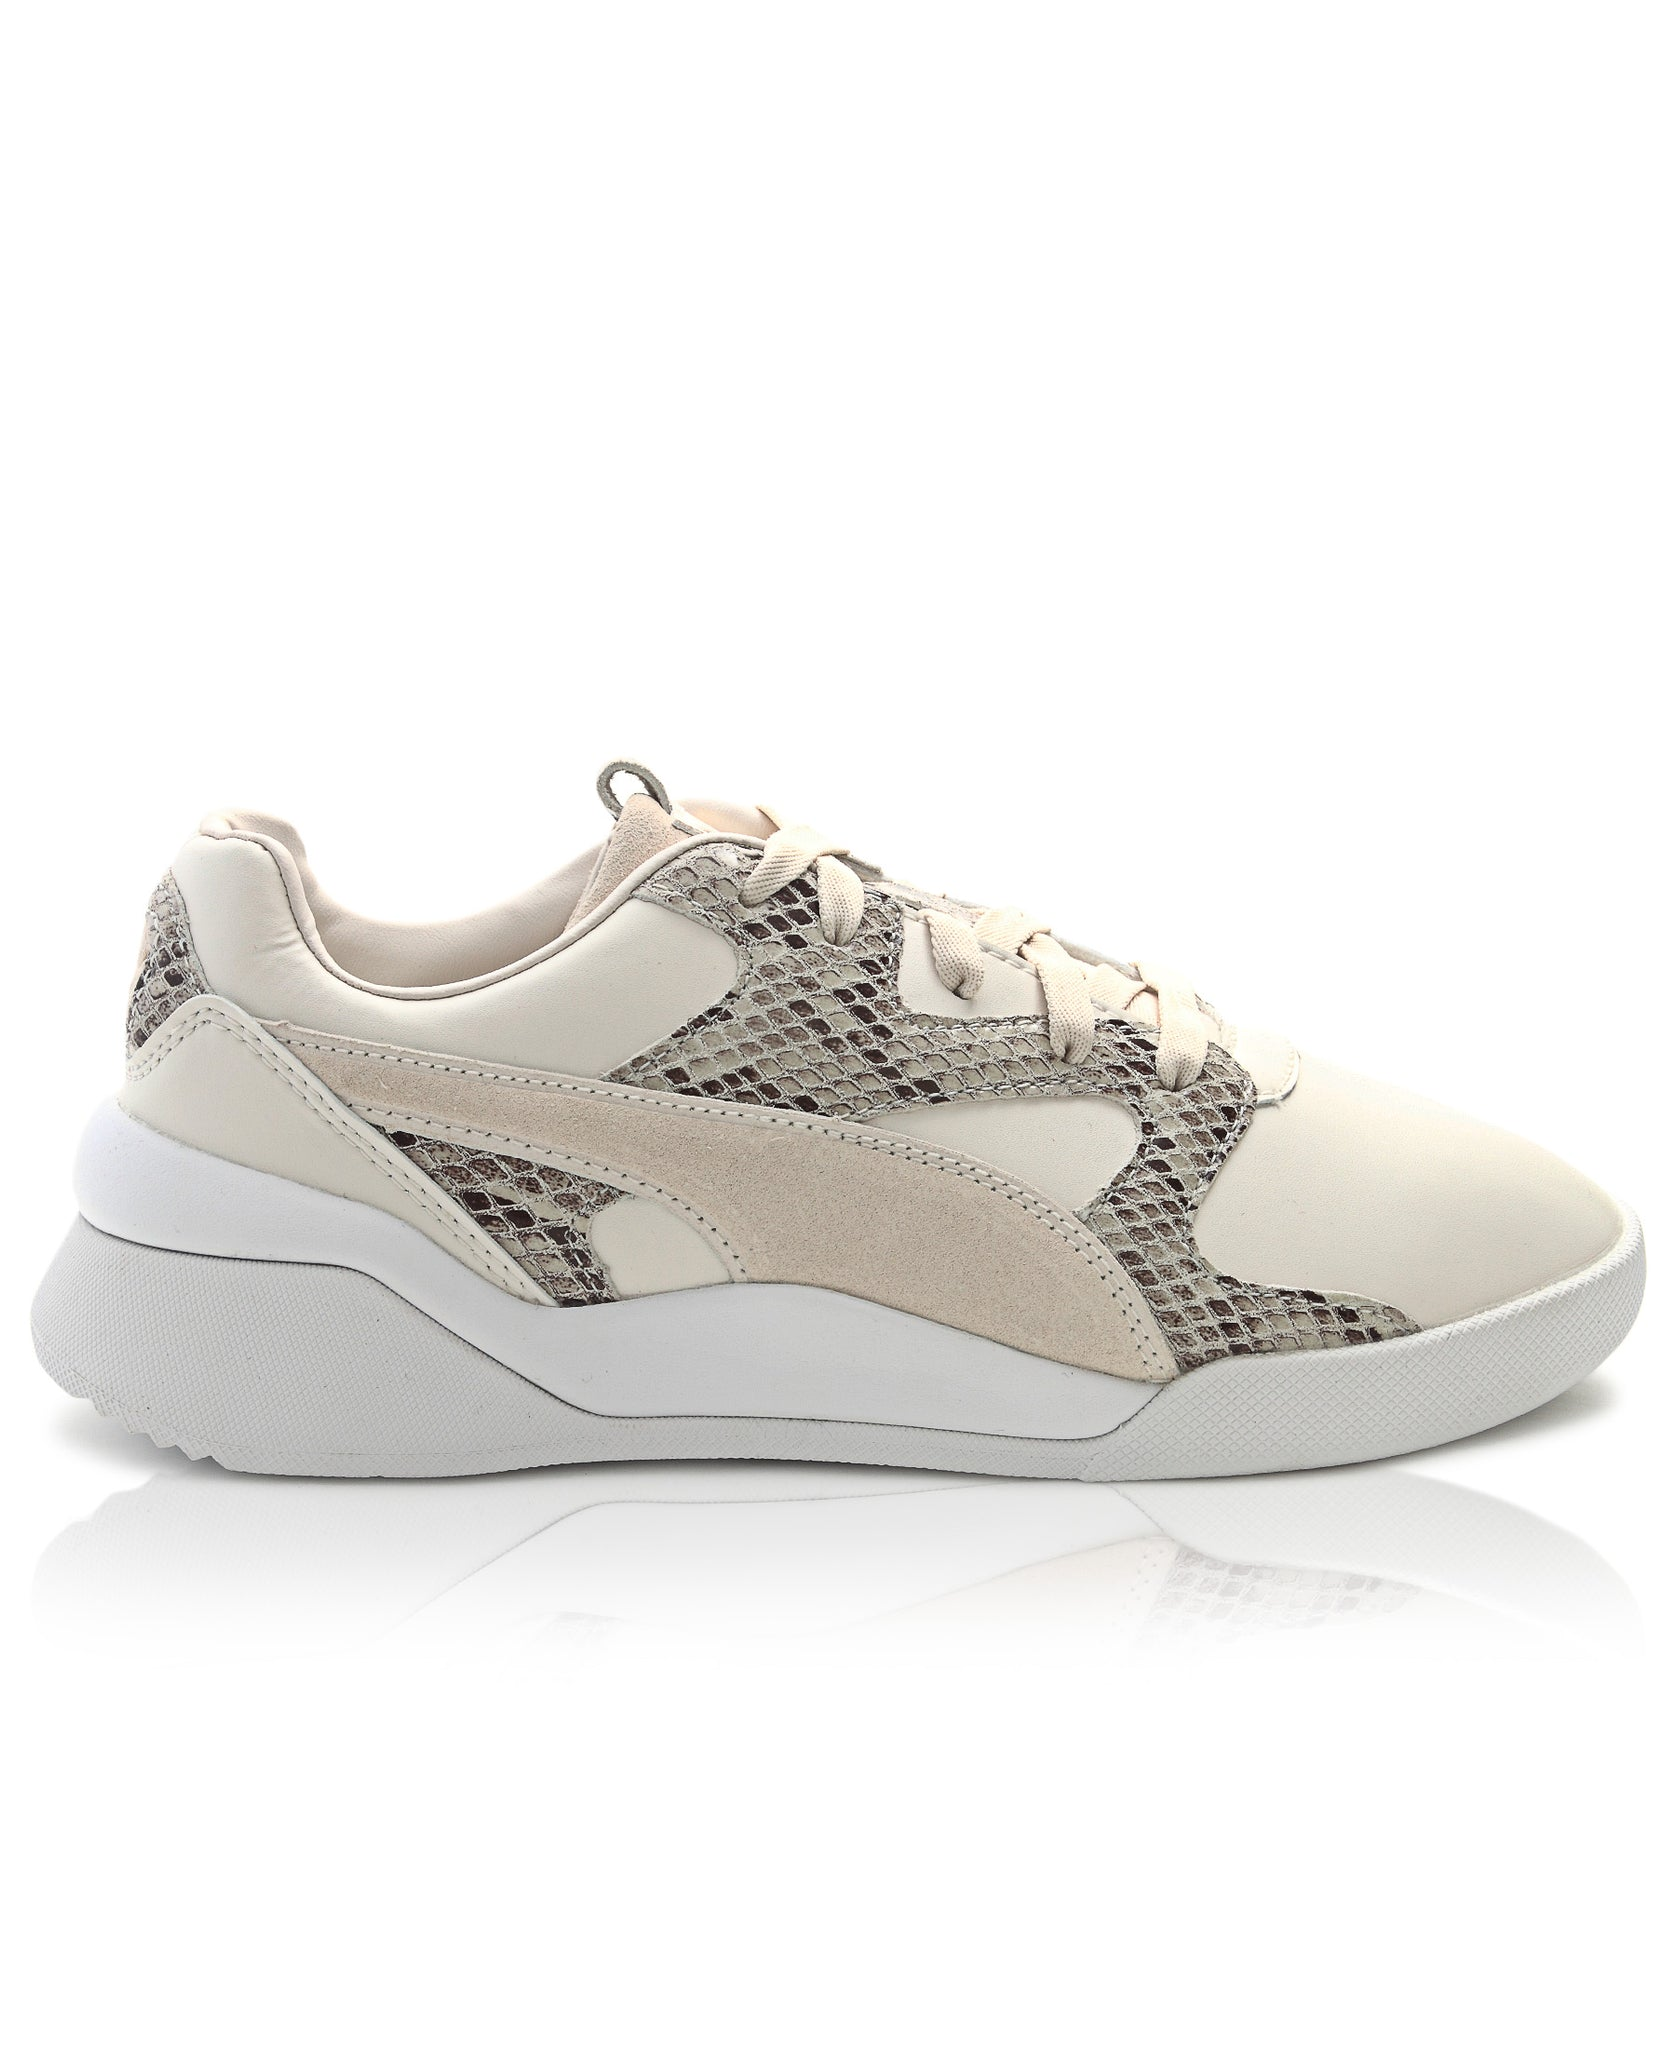 Ladies' Aeon Play Sneakers - Cream